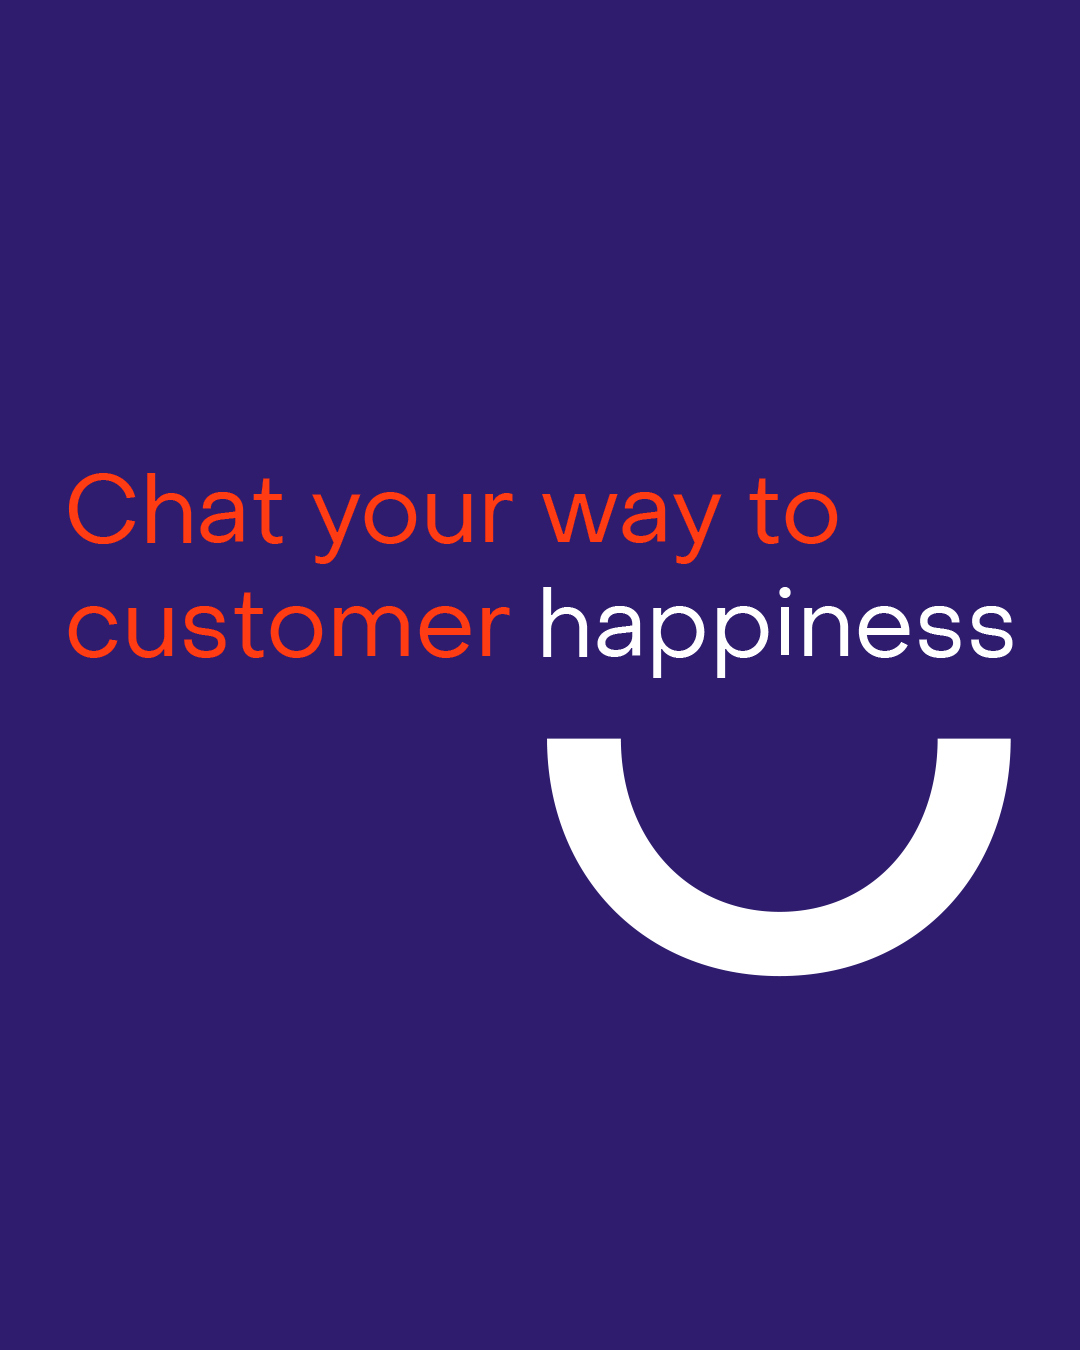 Chat your way to customer happiness on a purple background